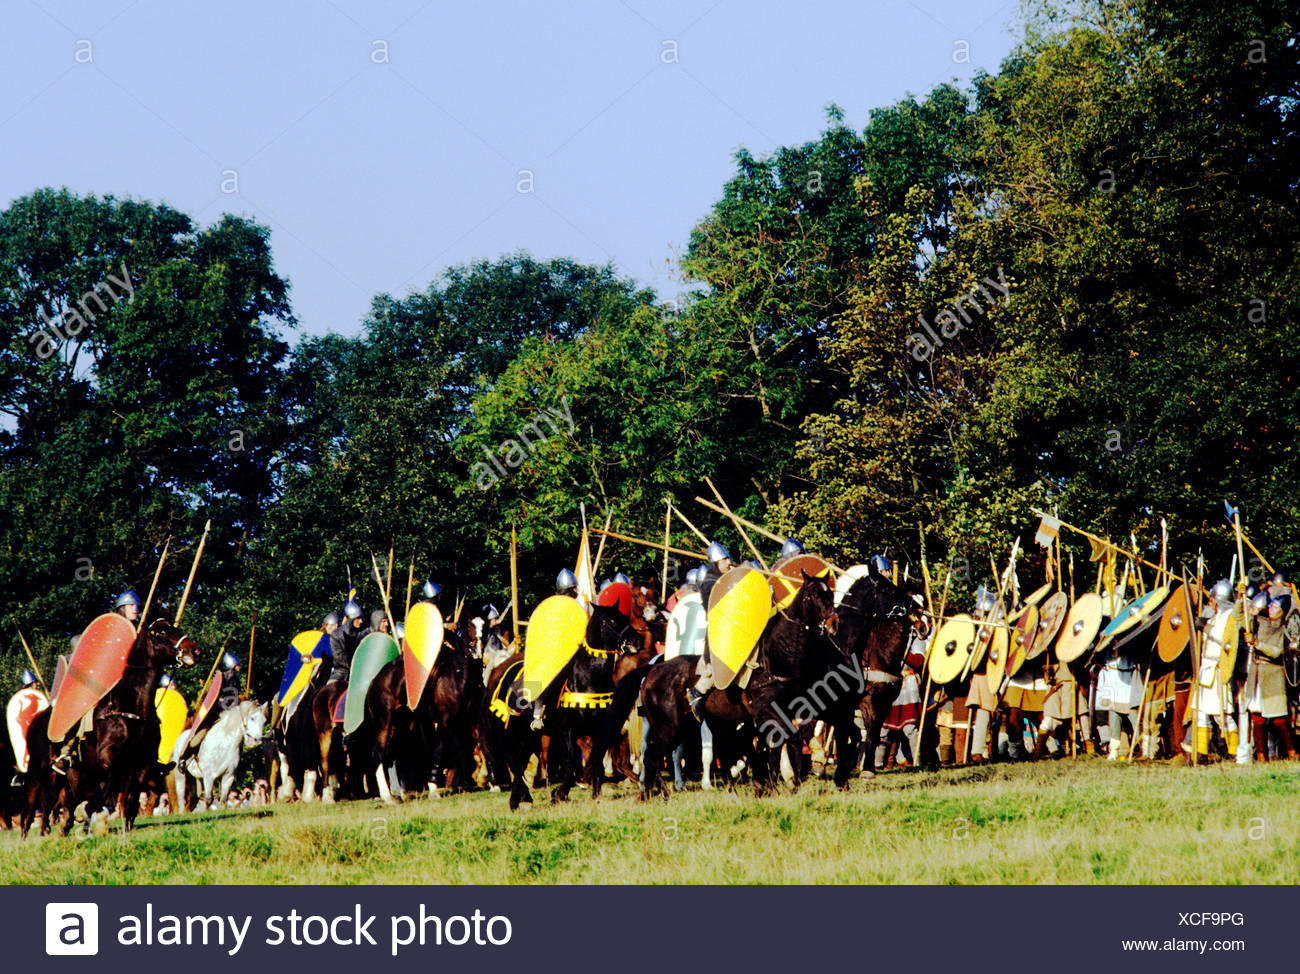 Battle of Hastings re-enactment, Saxon and Norman warriors, Battle Abbey, Sussex England UK famous battles - Stock Image